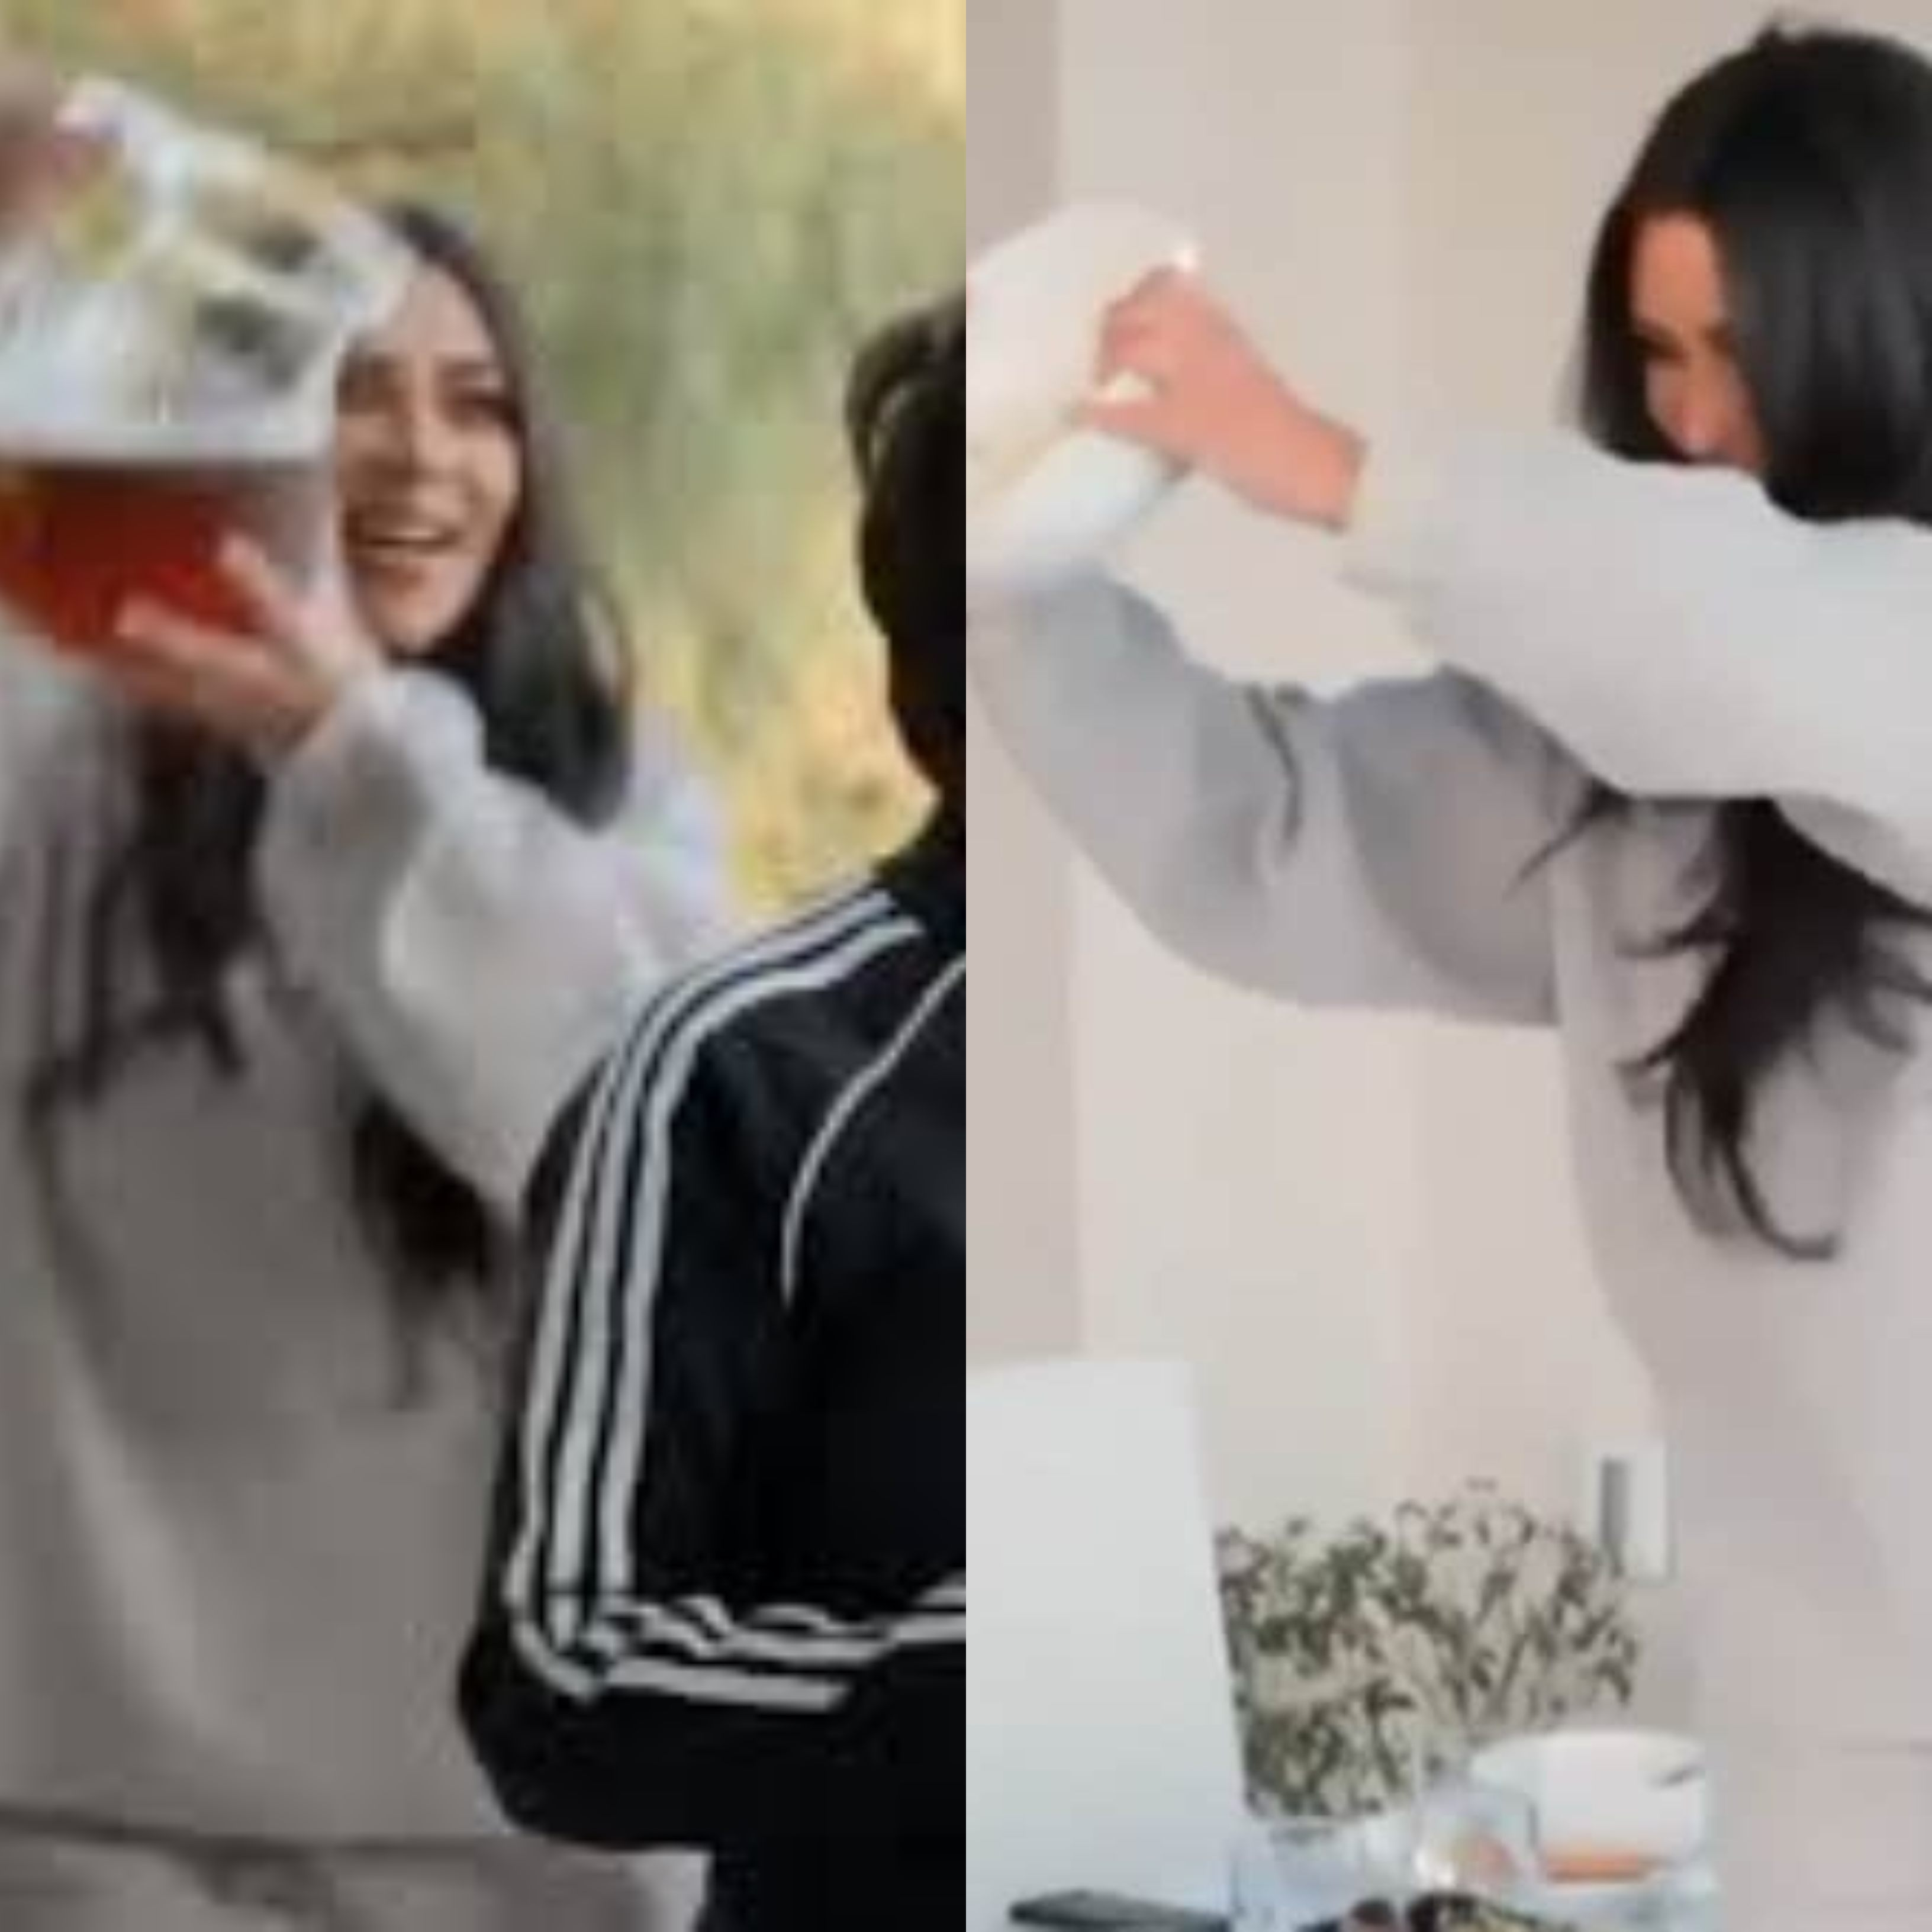 social media is furious over the kardashians wasting food in latest teaser